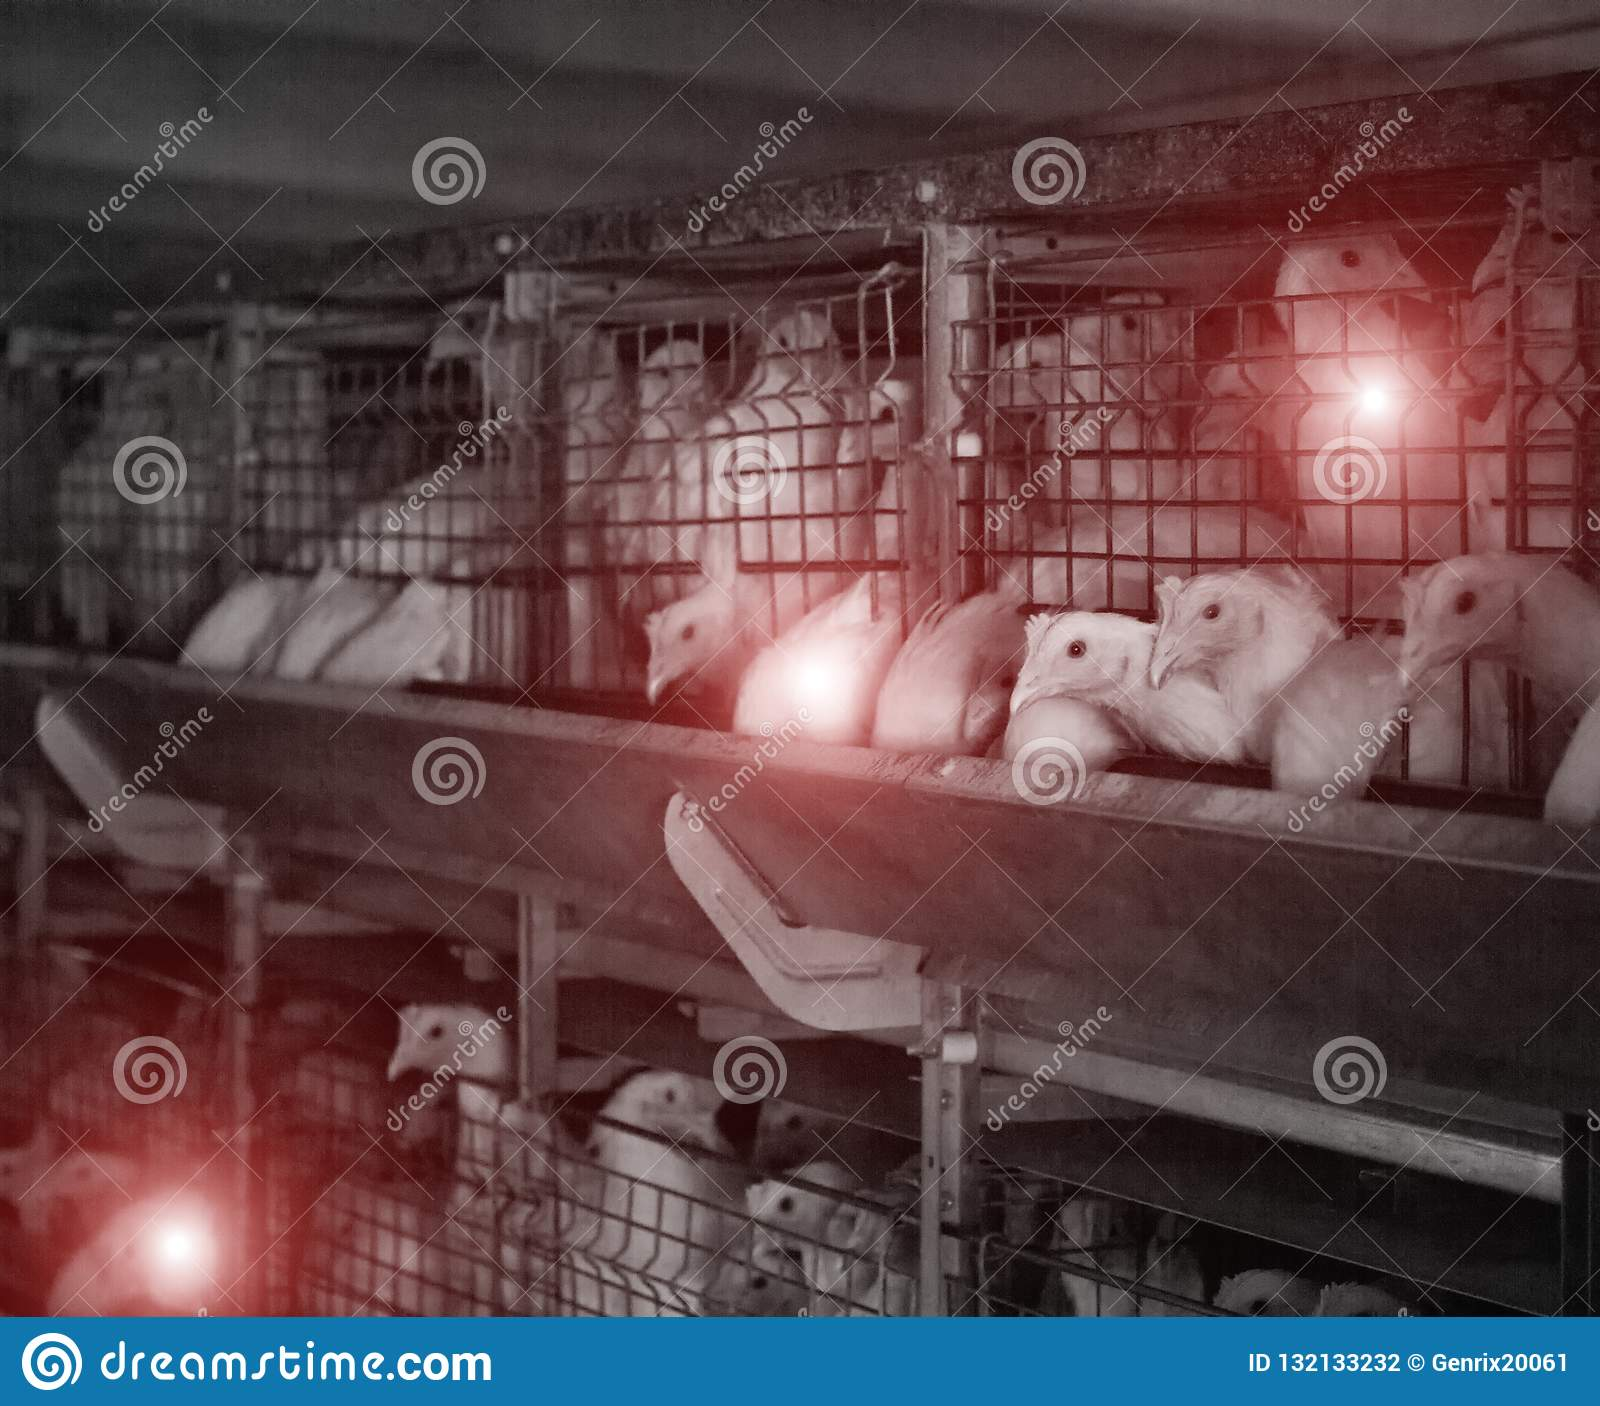 Poultry farm with sick chickens, emidemia and chicken diseases, veterinary